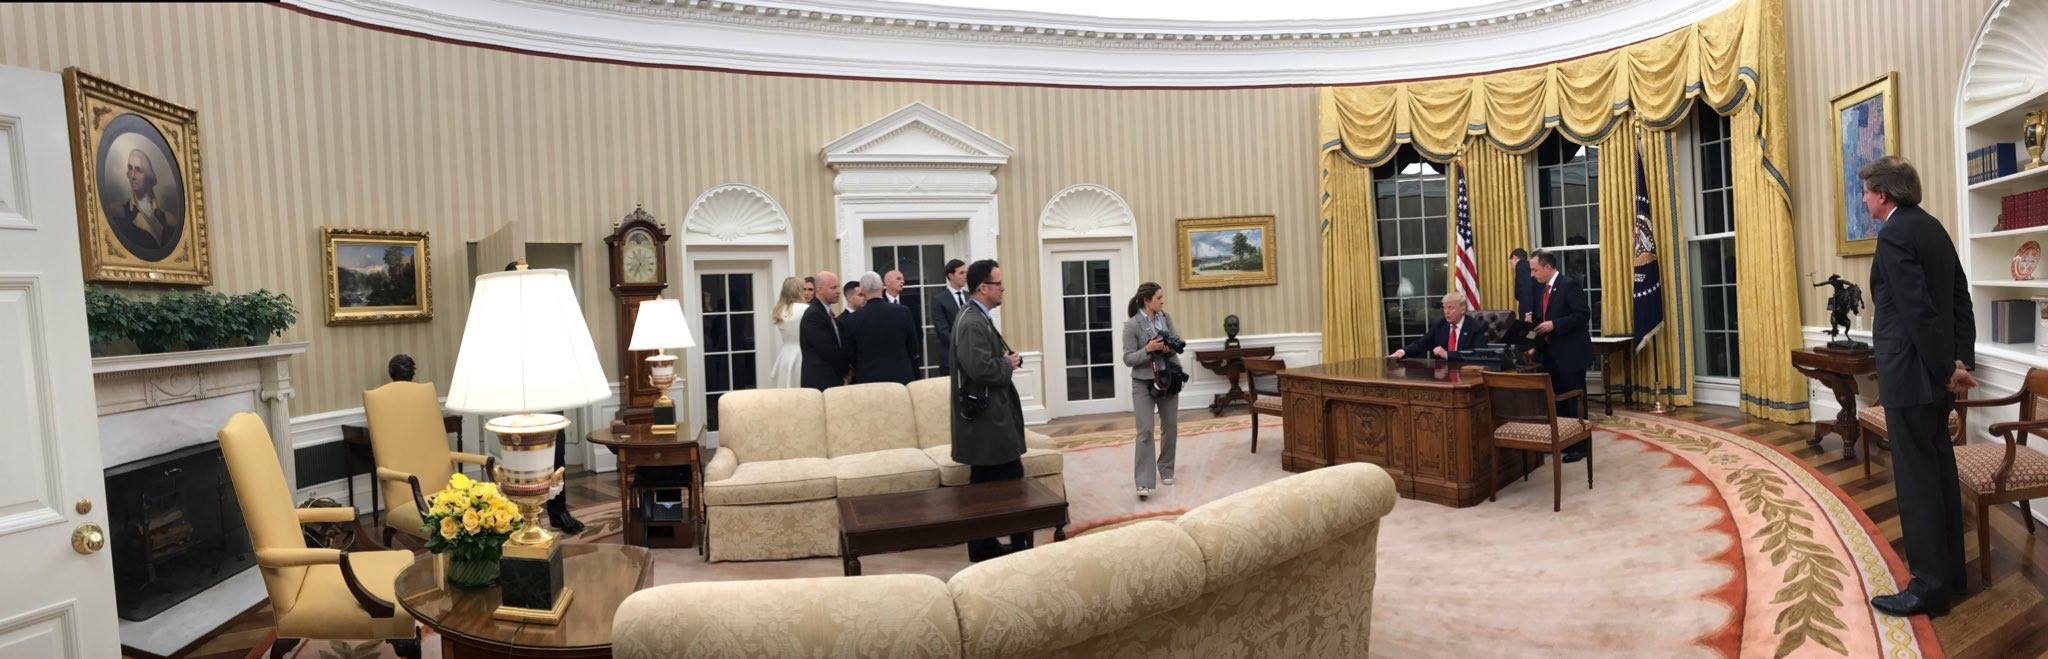 File:Trump Oval Office Panorama